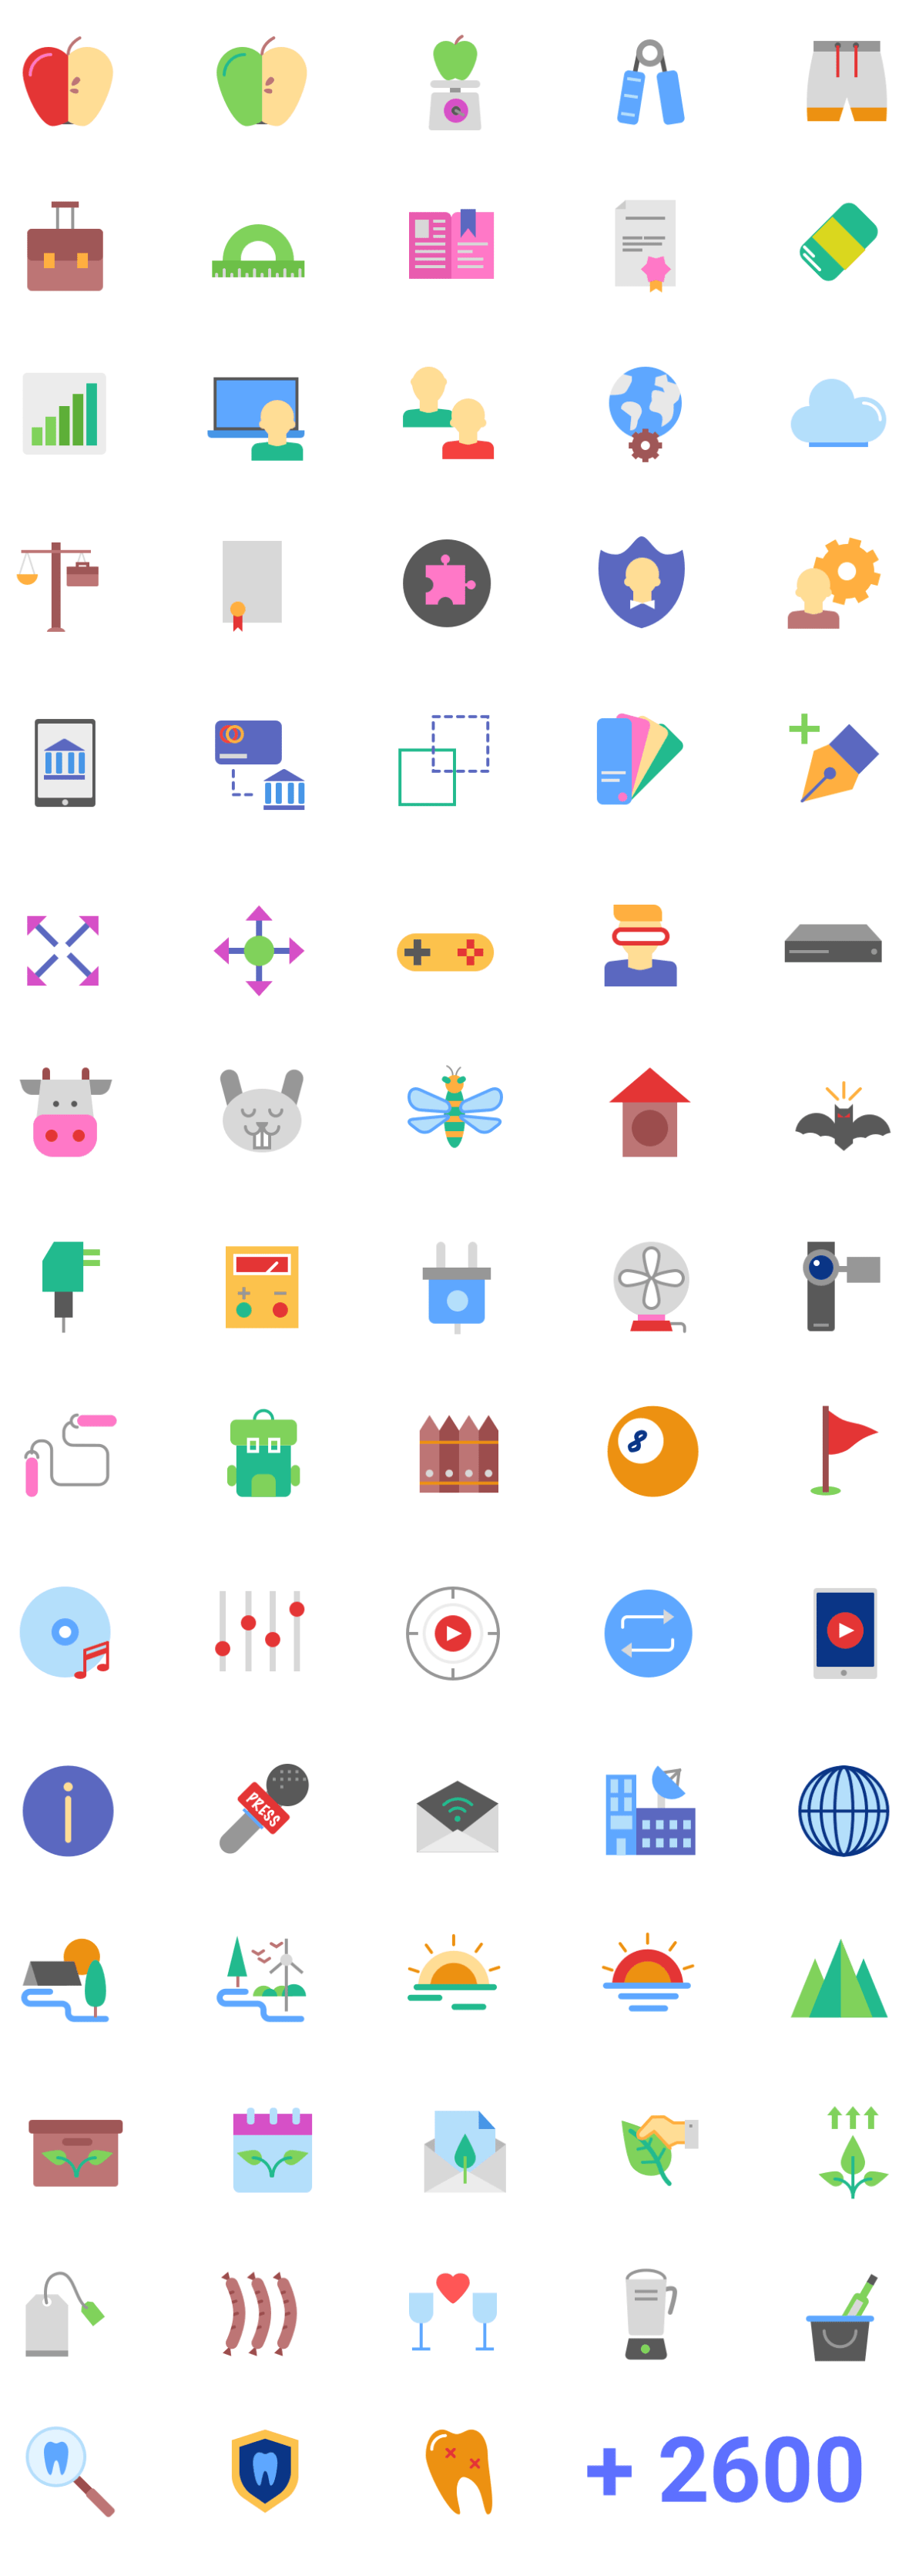 Magicons - Free 2687 Flat Icons